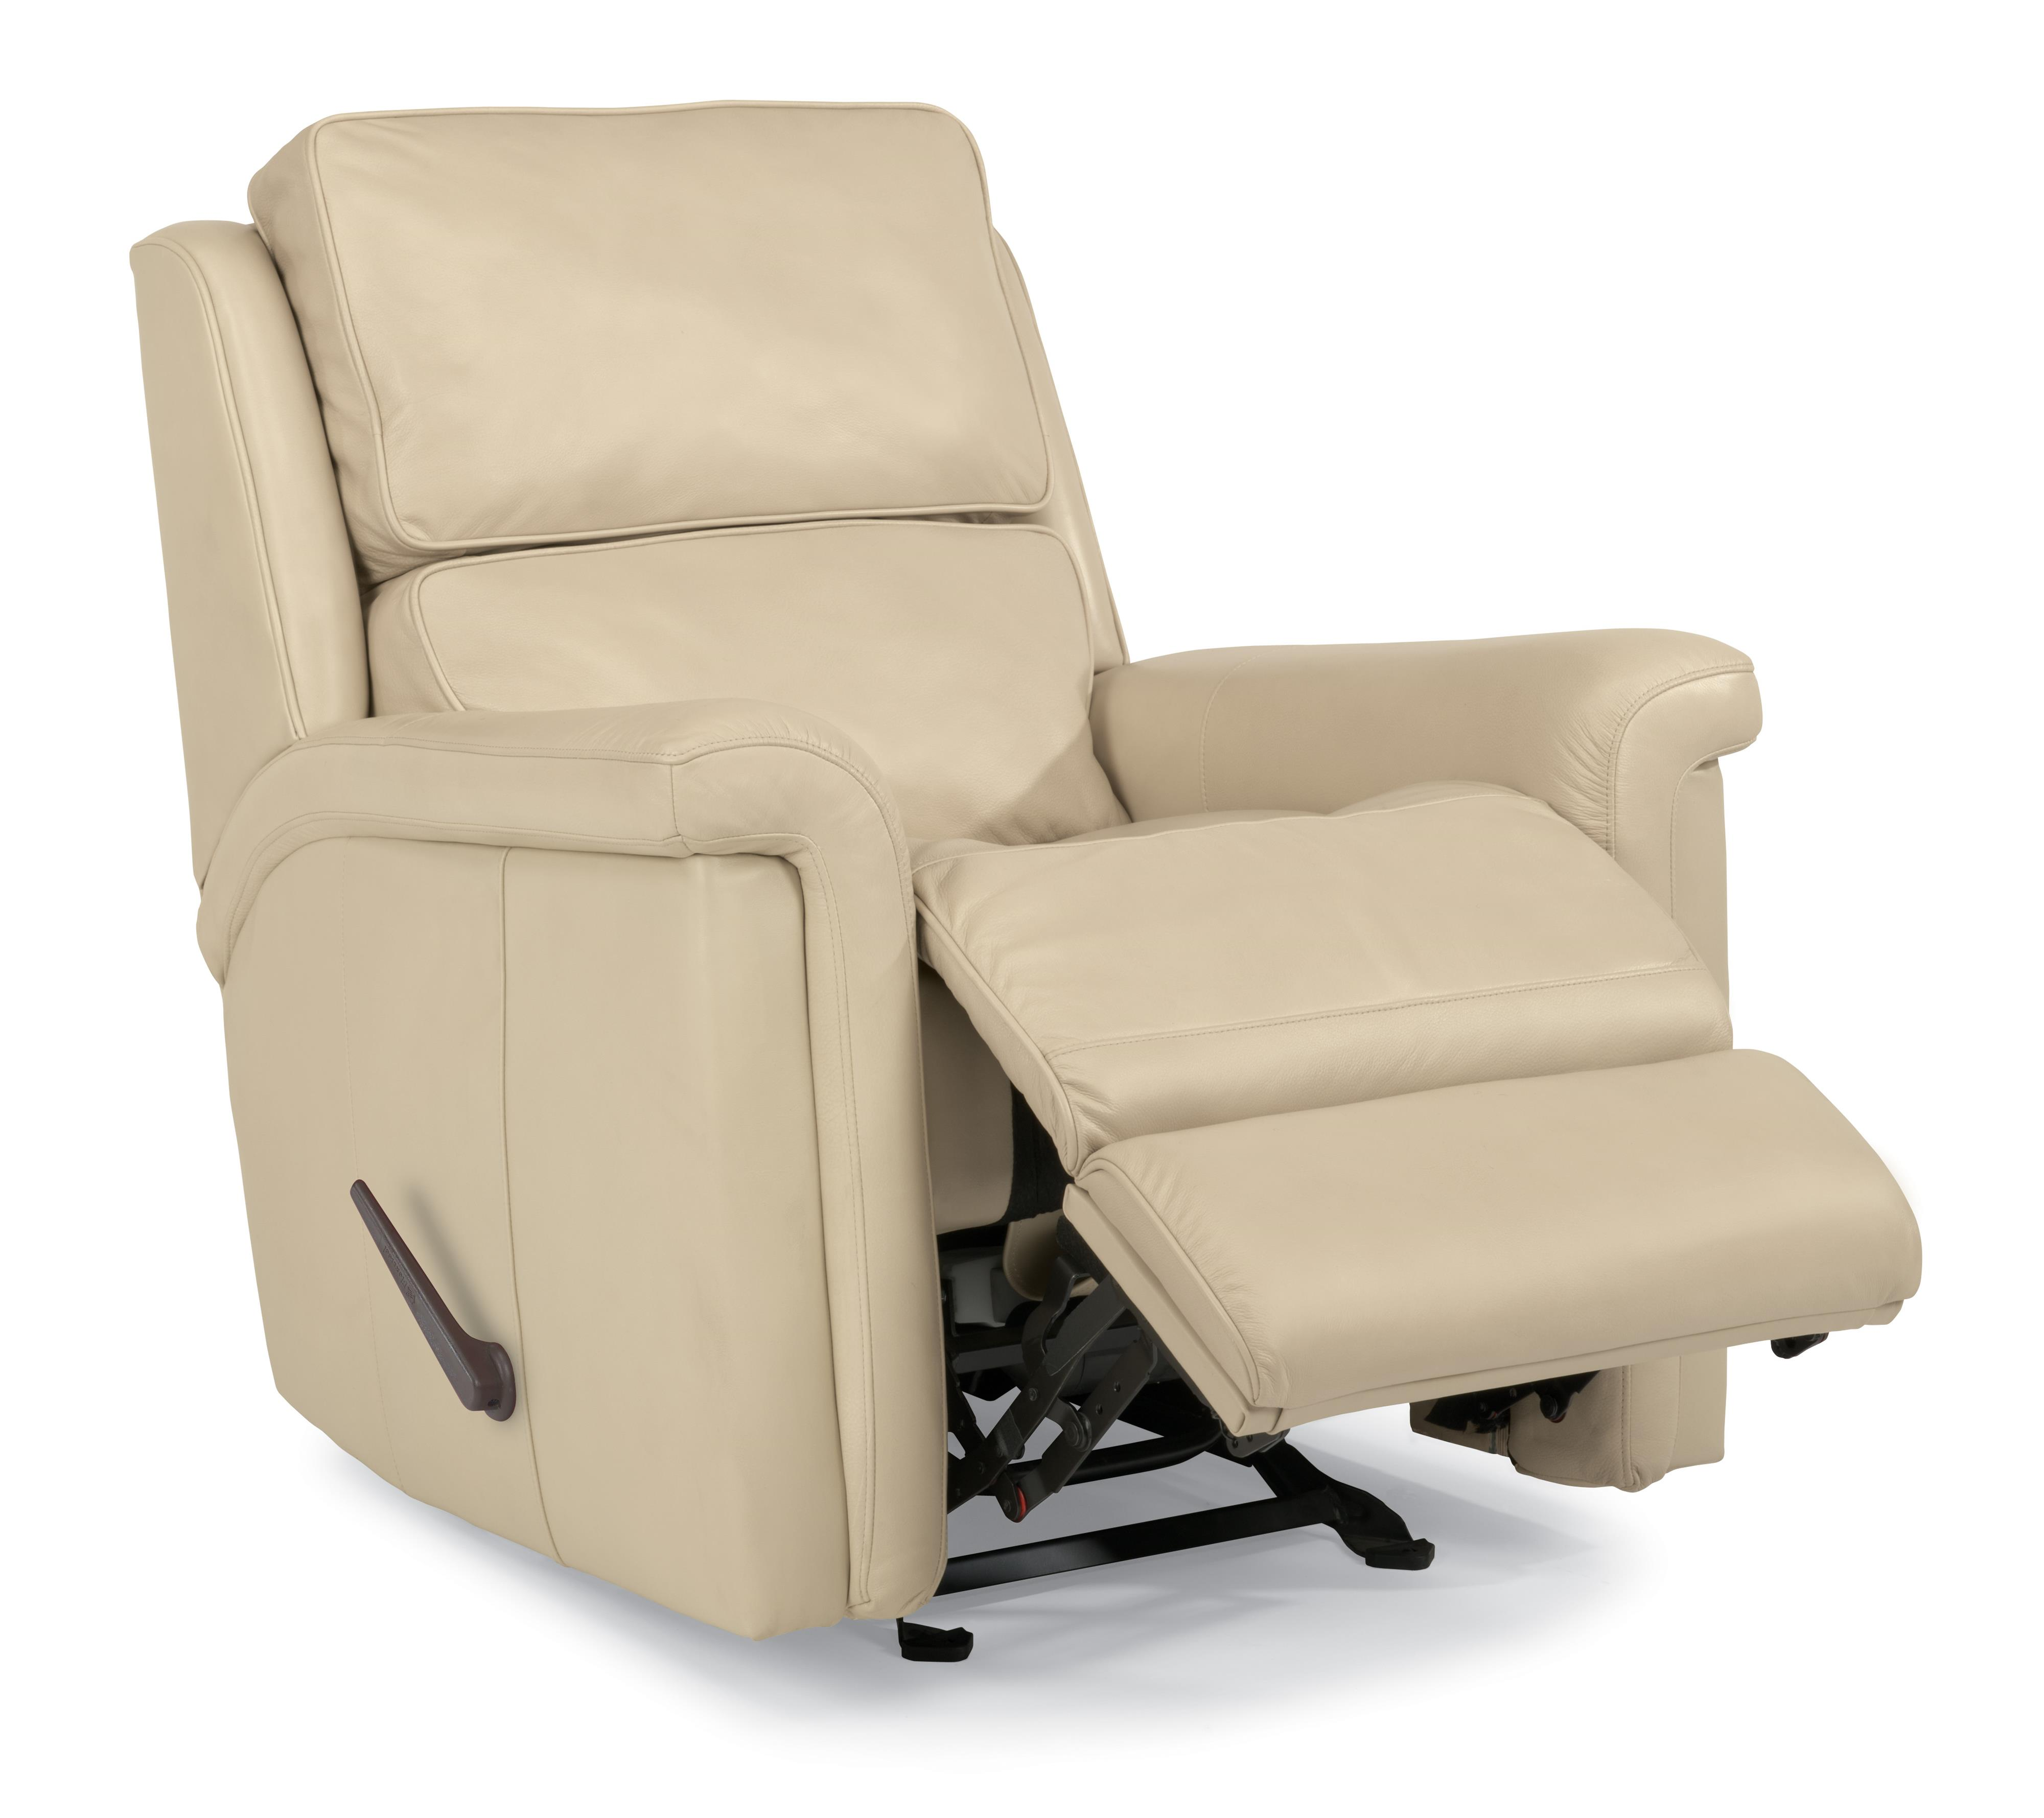 Flexsteel Latitudes-Tosha Rocker Recliner - Item Number: 1283-510-LSP-86